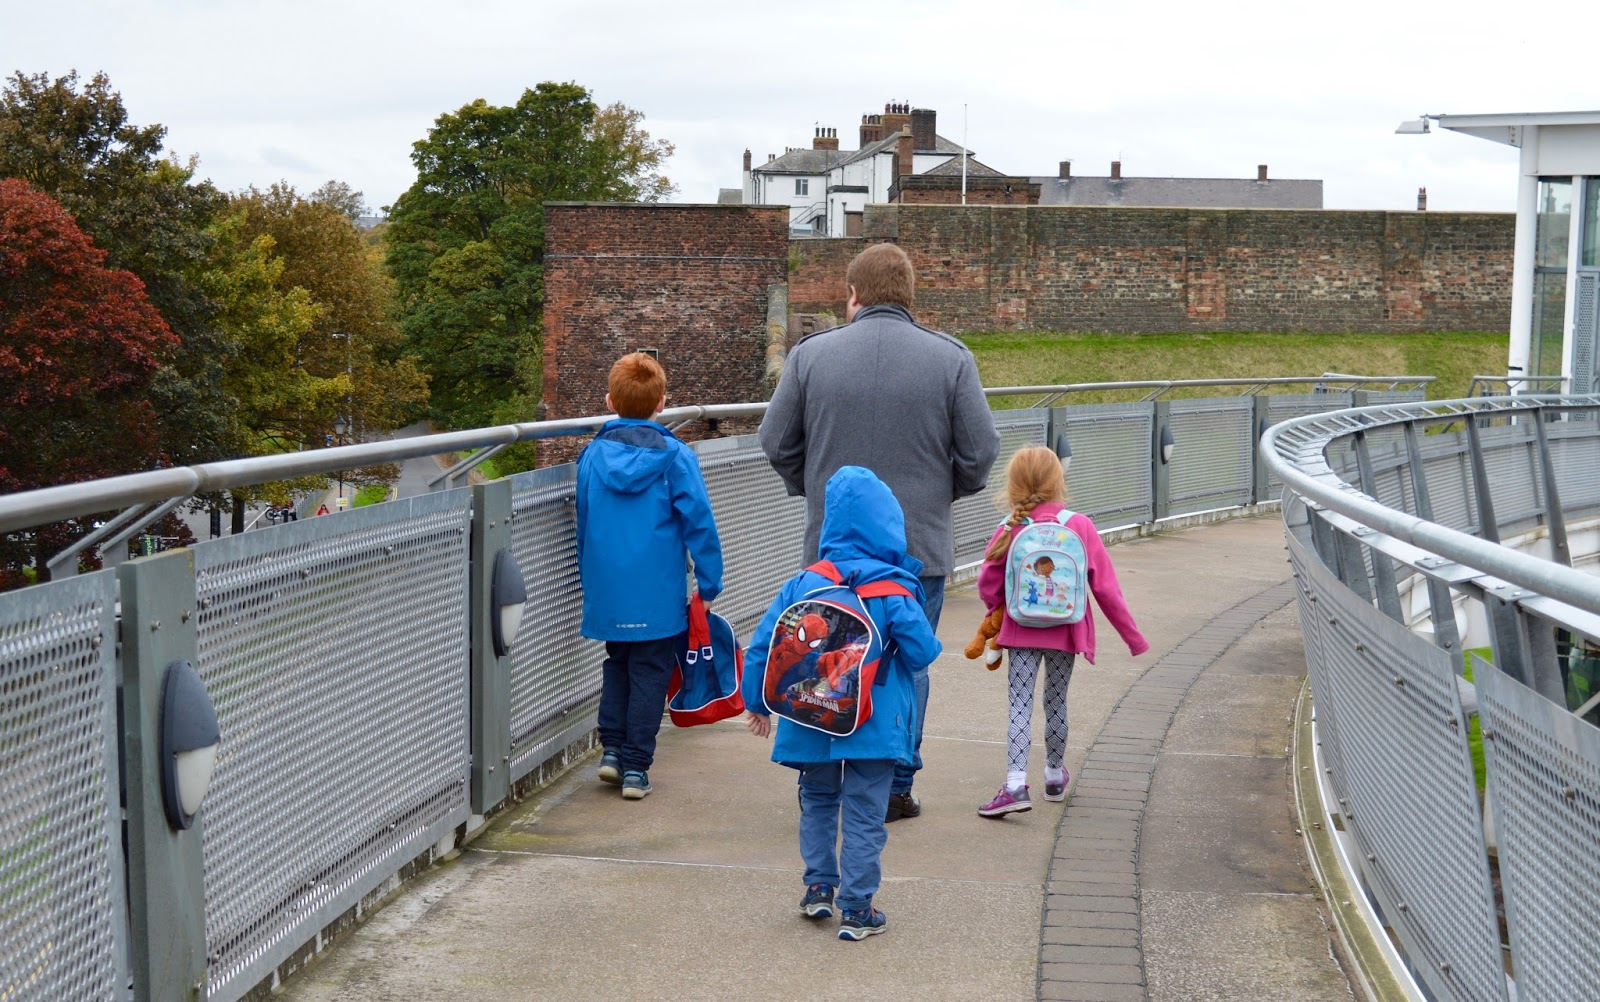 Great Days Out with Northern  | Our Day Trip to Carlisle by Train - bridge crossing from Tullie museum to Carlisle castle